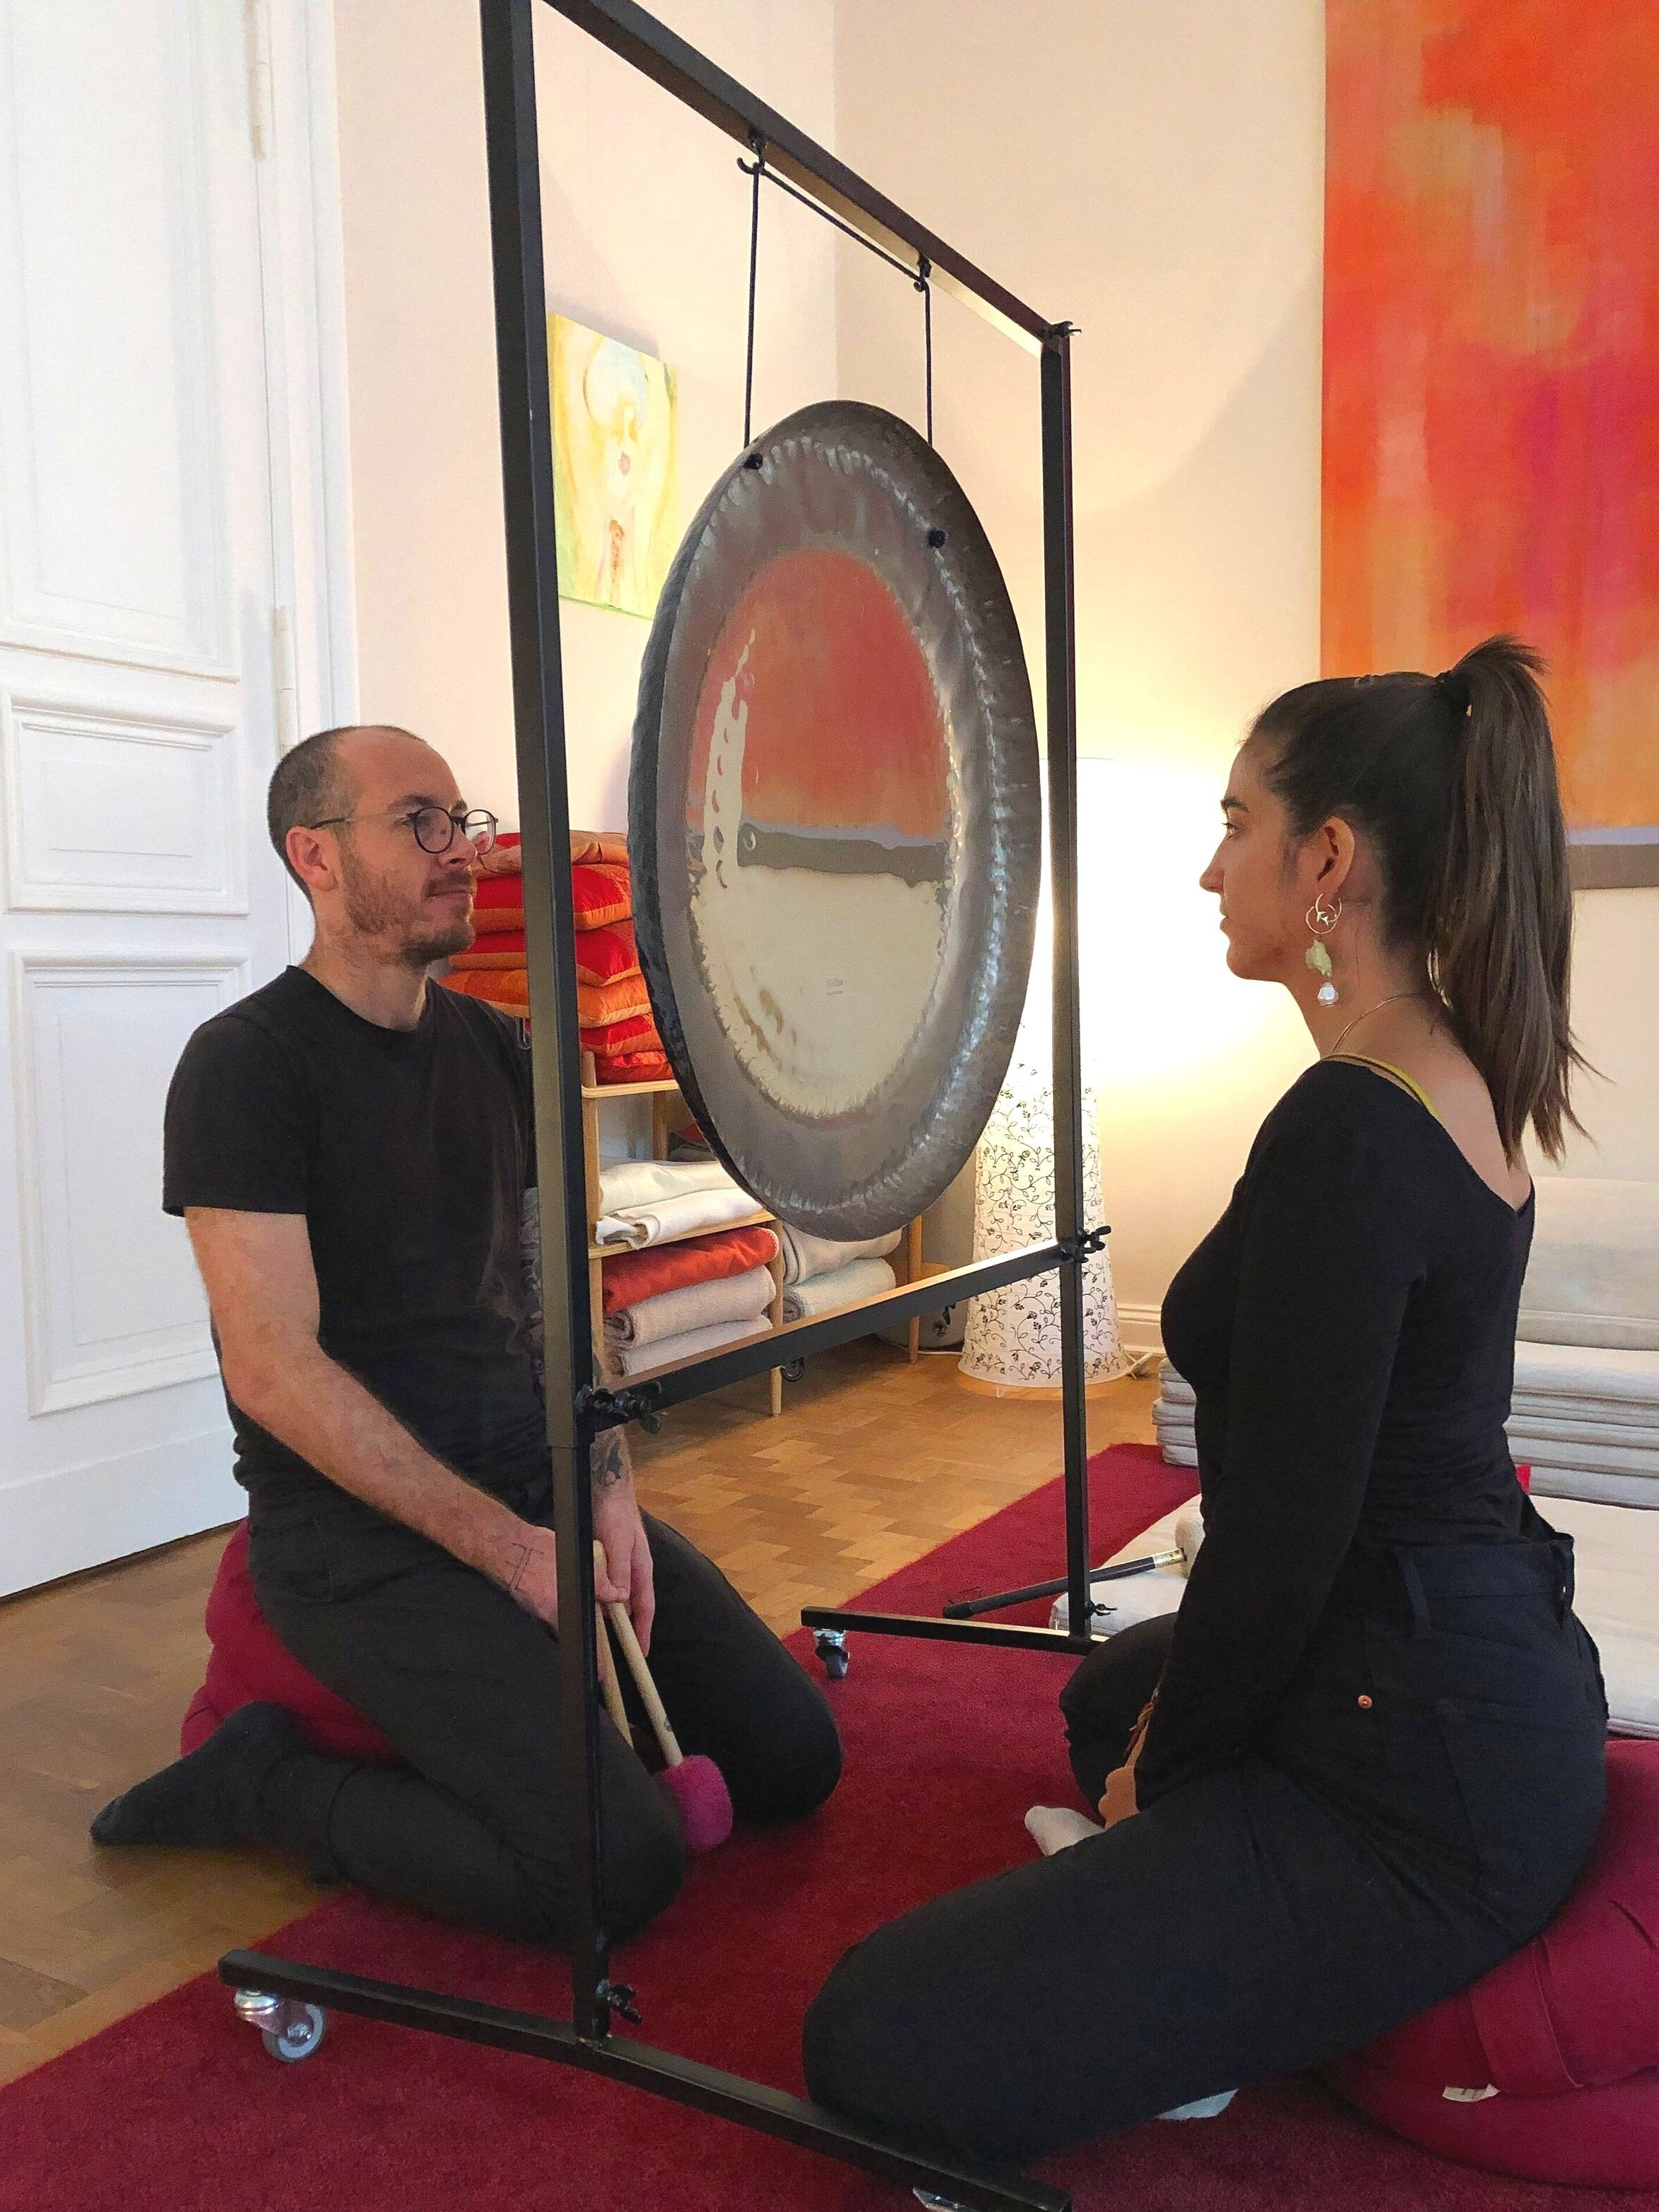 Gong Mirror Meditation during the Initiation into Gong Workshop Berlin